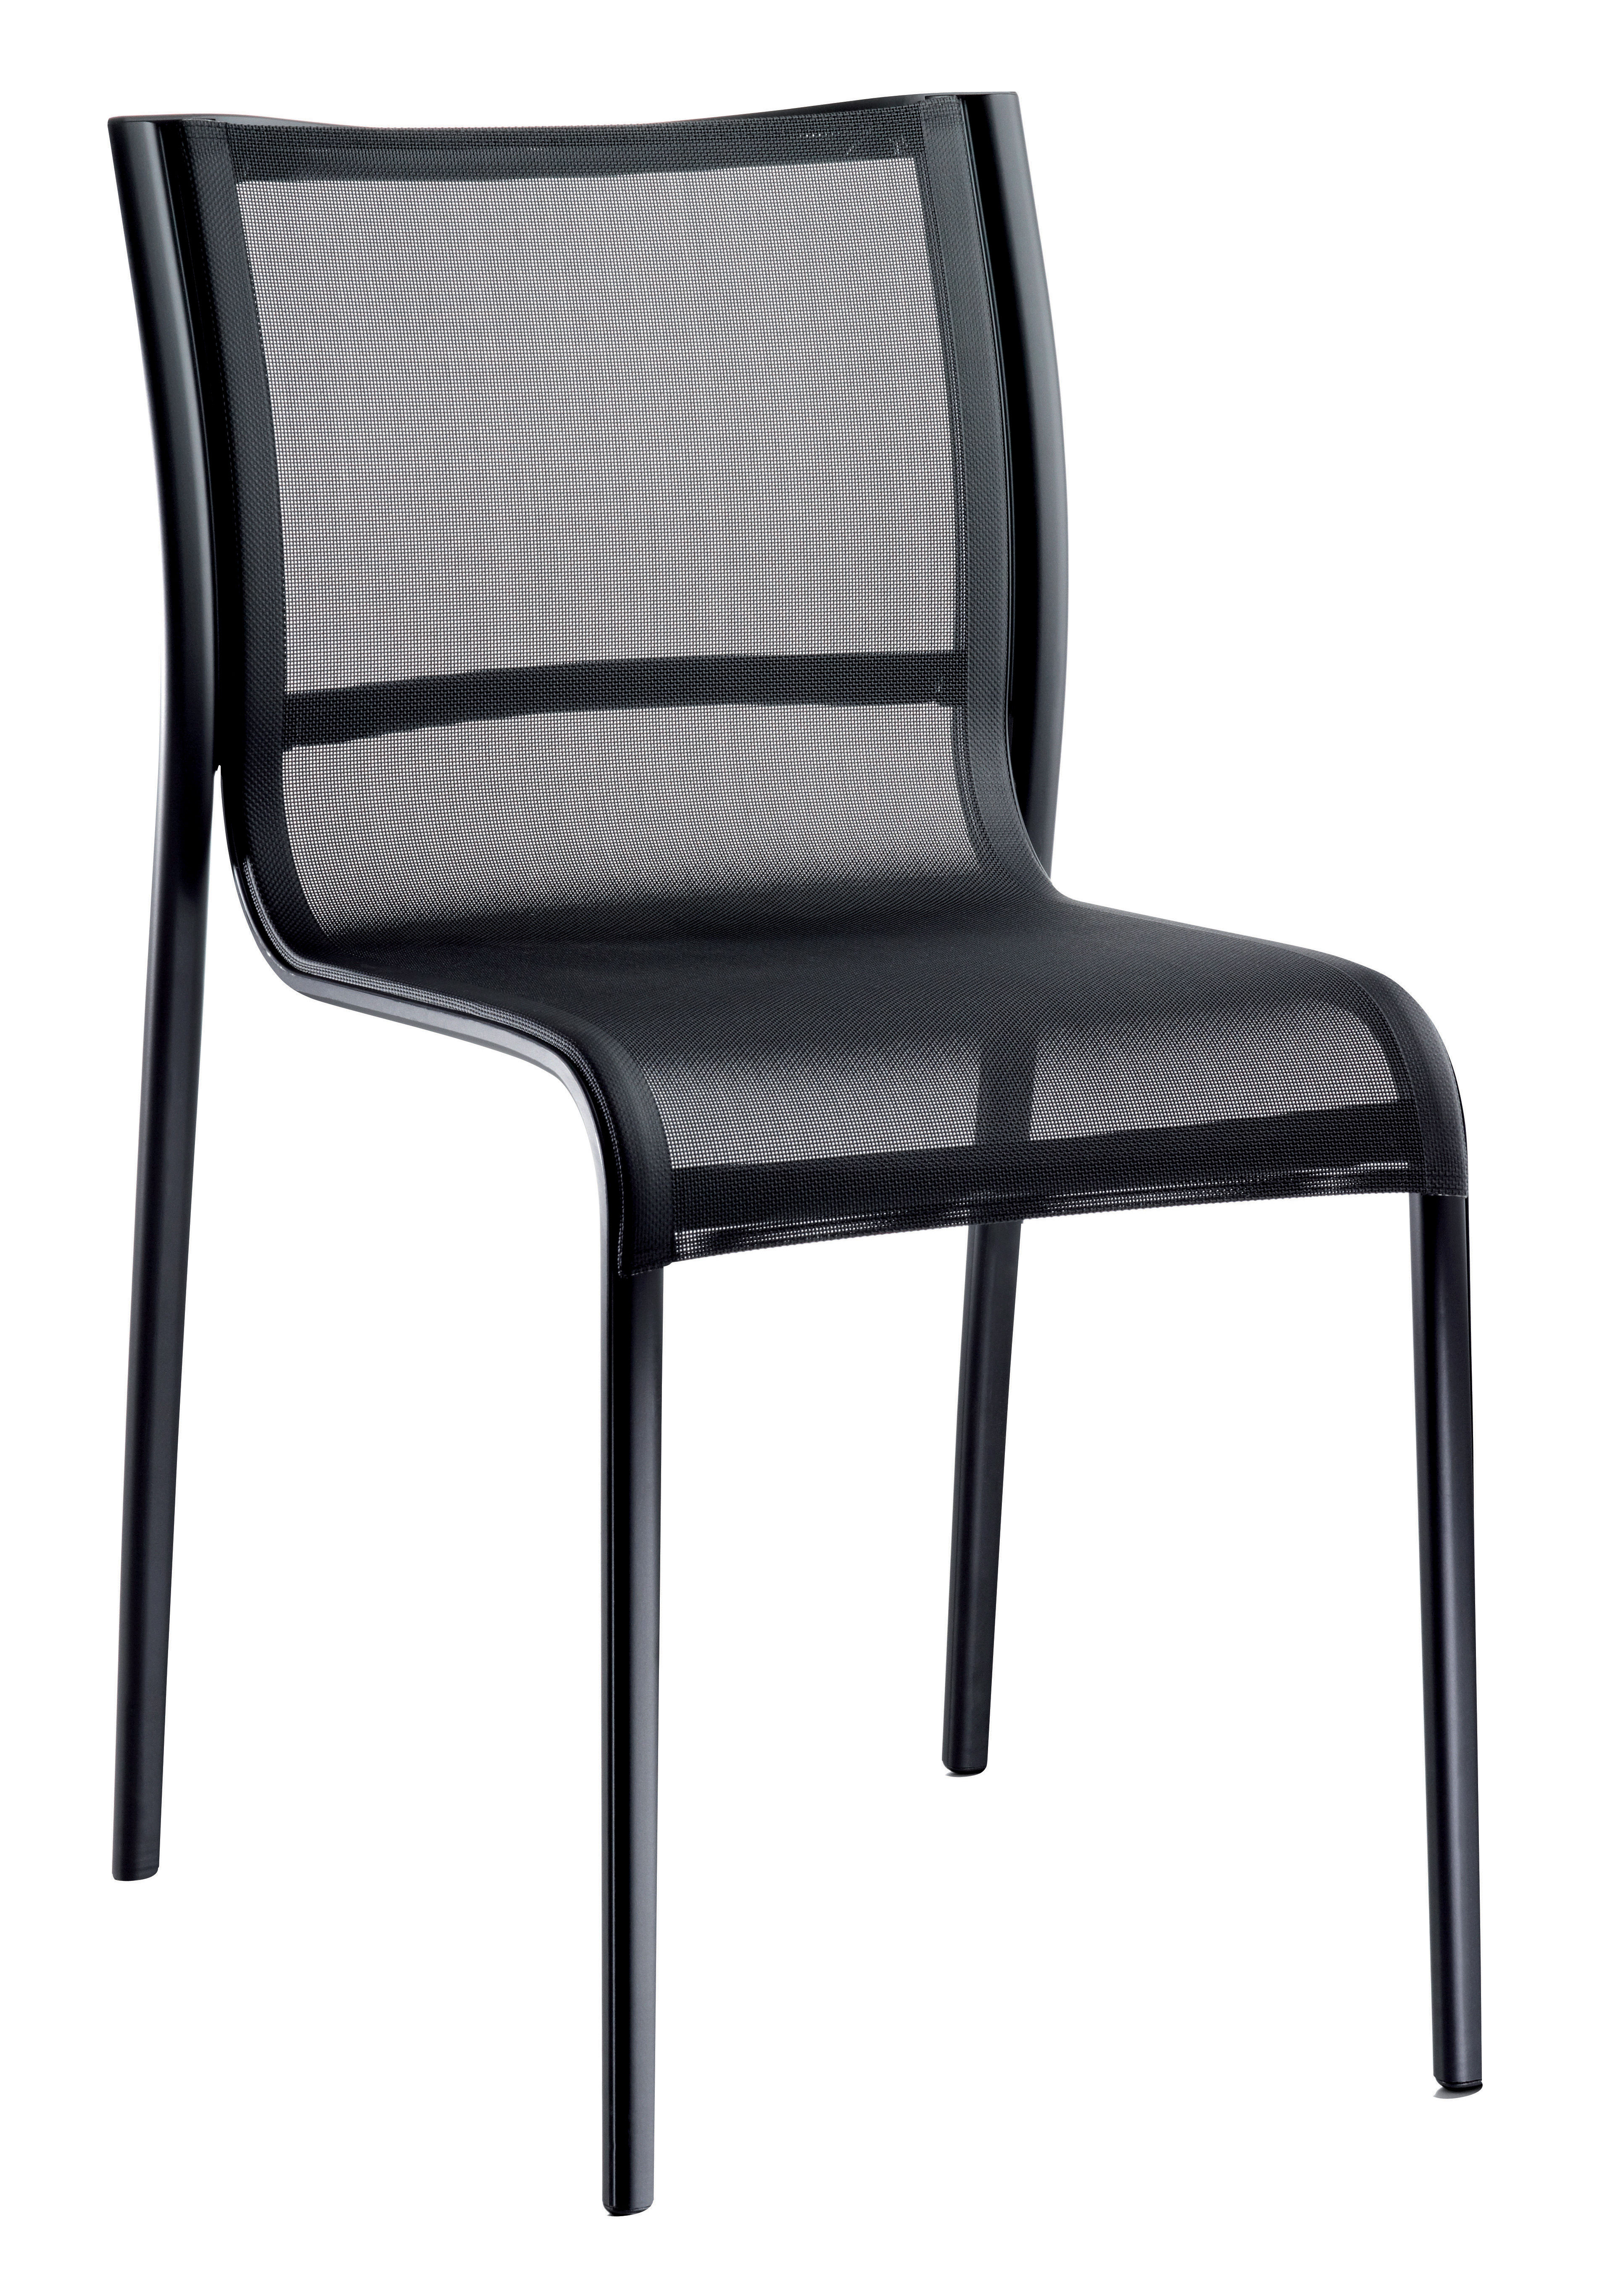 Furniture - Chairs - Paso Doble Stacking chair - Fabric by Magis - Black - Cloth, Varnished aluminium